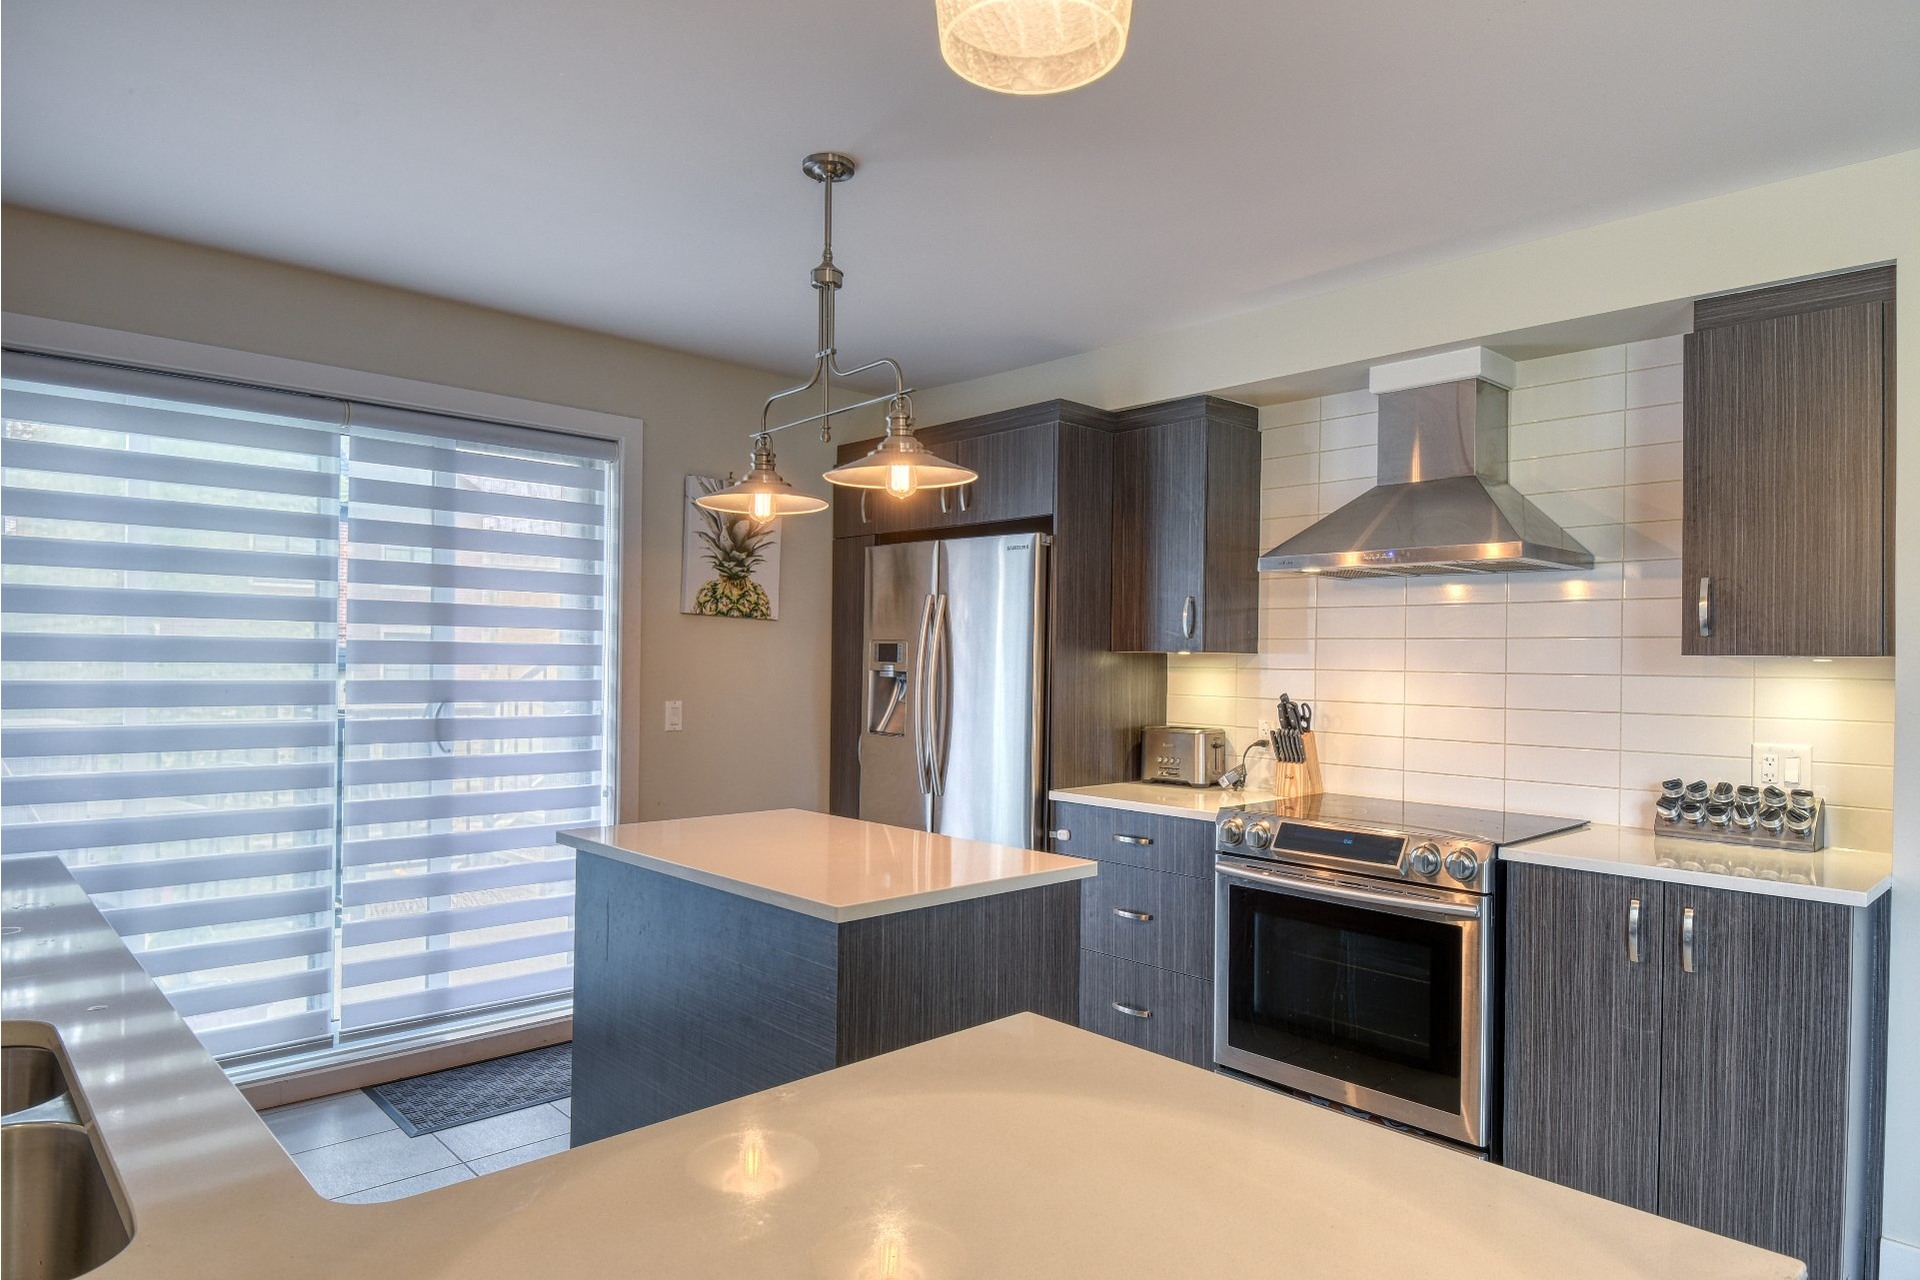 image 9 - Apartment For sale Duvernay Laval  - 6 rooms